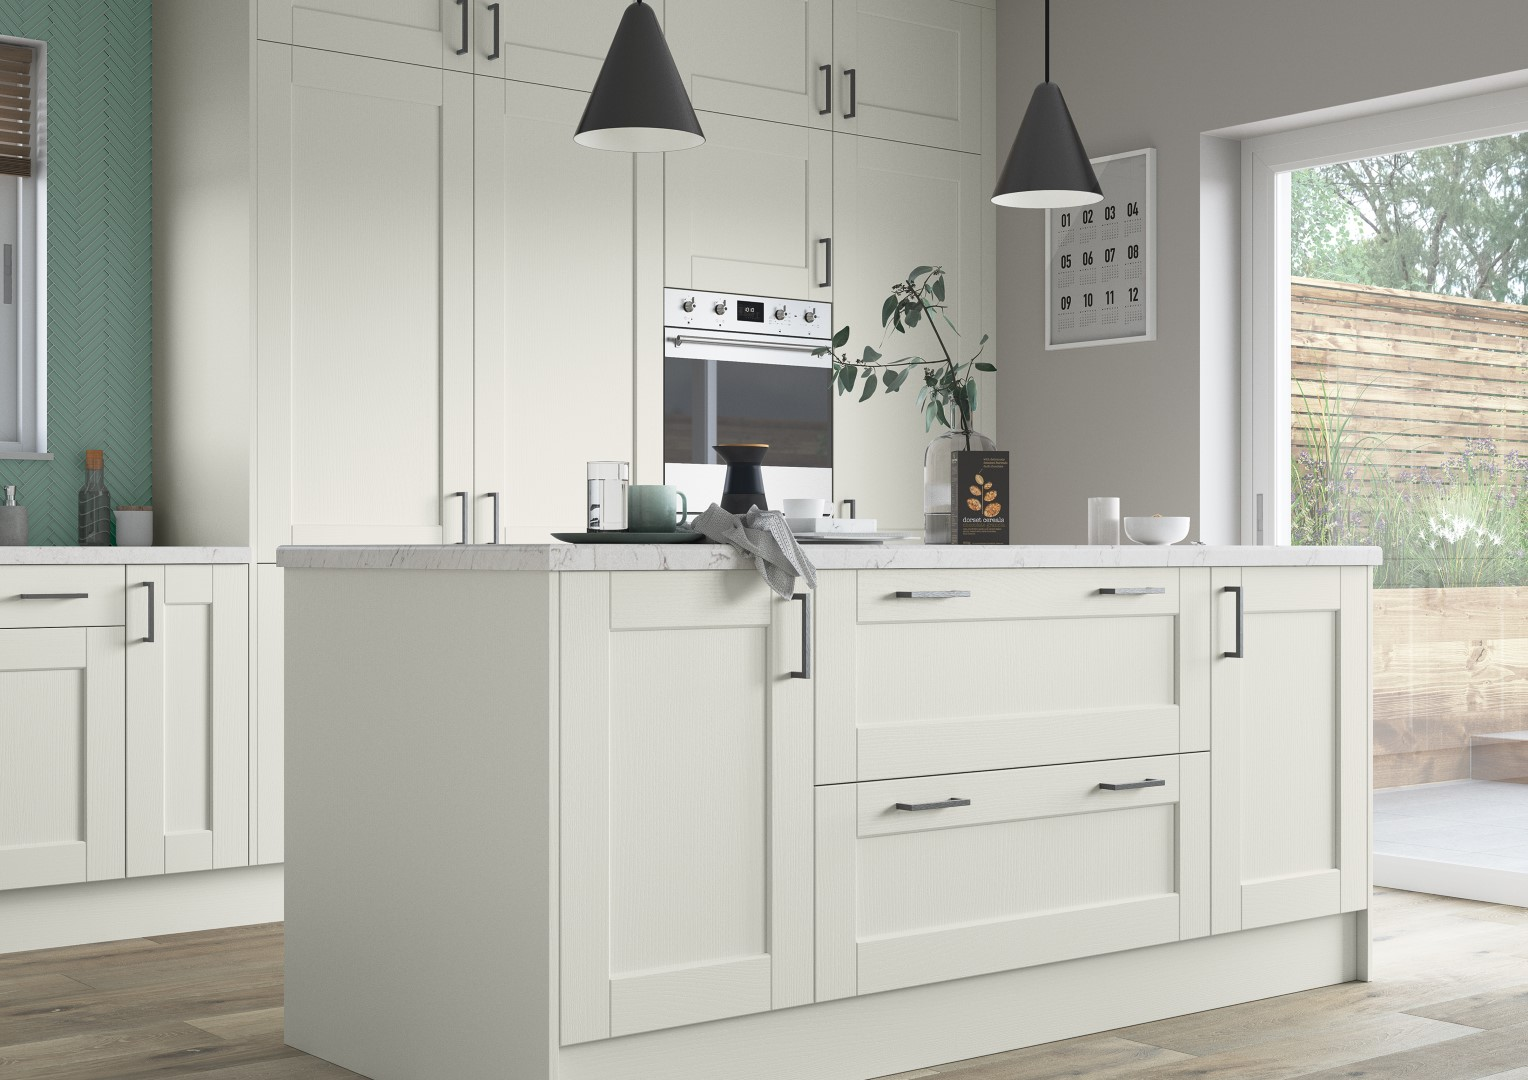 Kensington Porcelain - Kitchen Design - Alan Kelly Kitchens - Waterford - 2